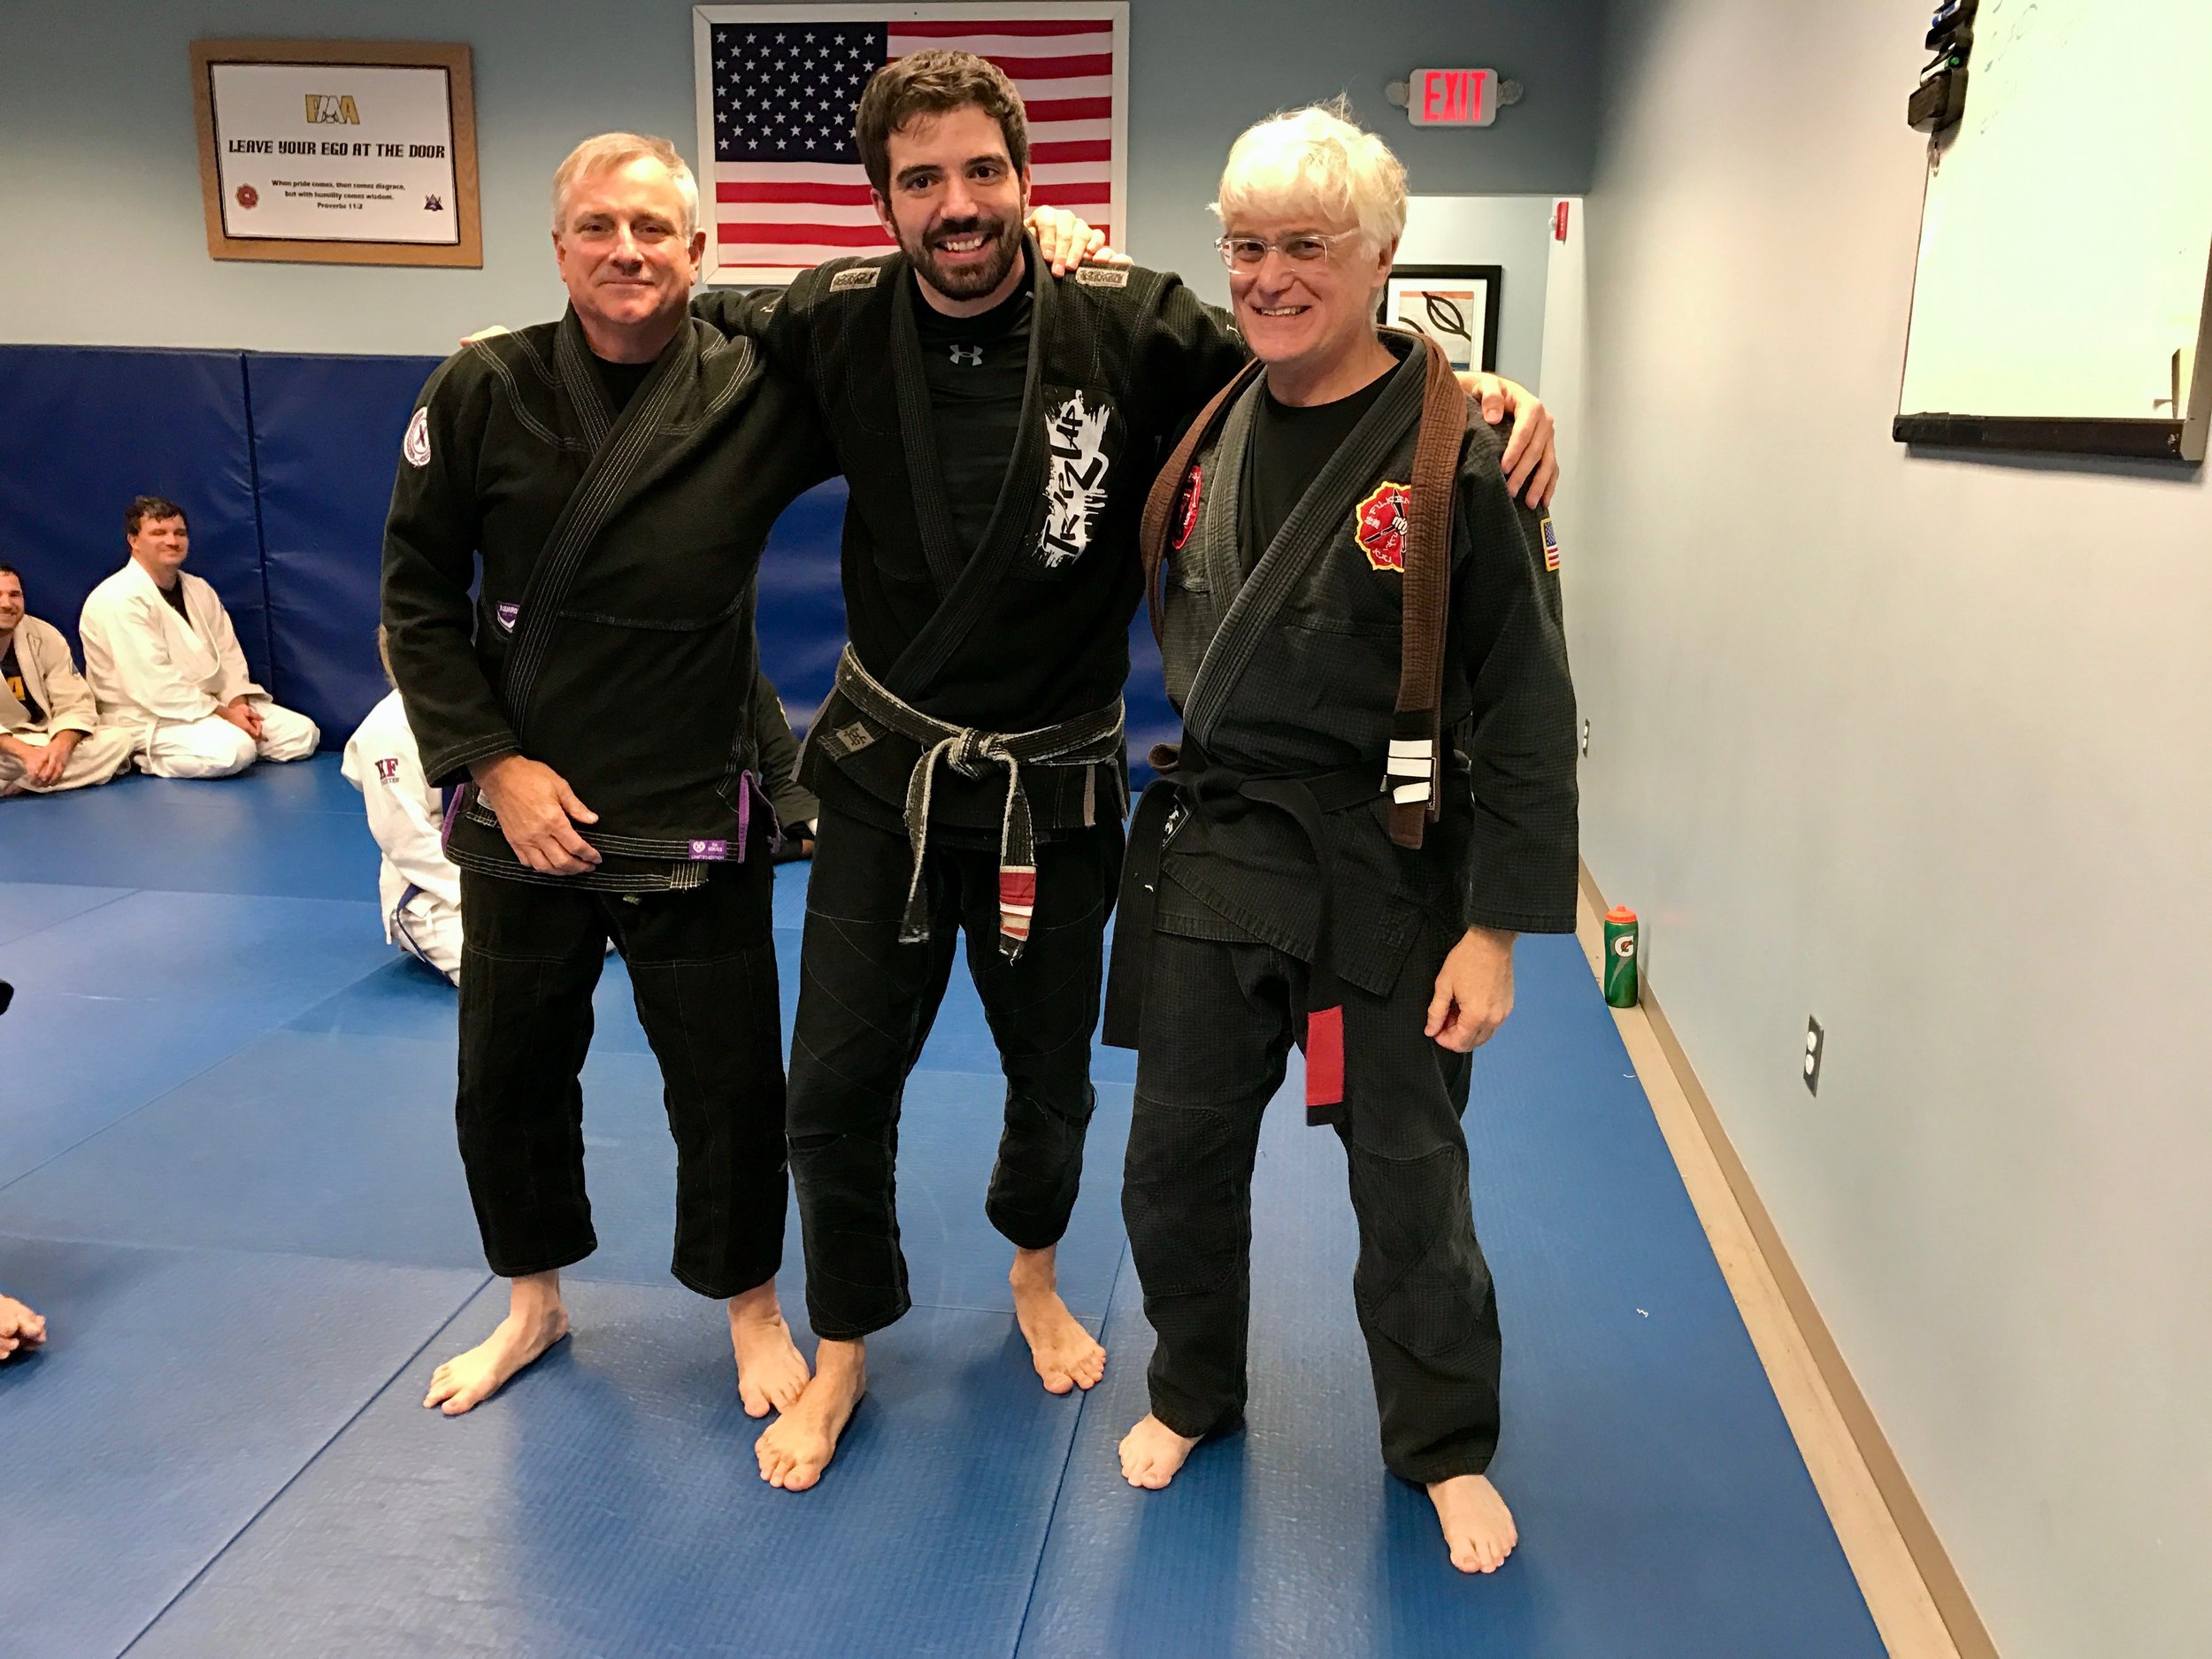 This is Bill on the night he earned his Brazilian Jiu Jitsu Black Belt. This is an unbelievable accomplishment at any age, but especially to do in your 60s! SiJo Bruce Corrigan gave Bill the belt from around his waist that night.